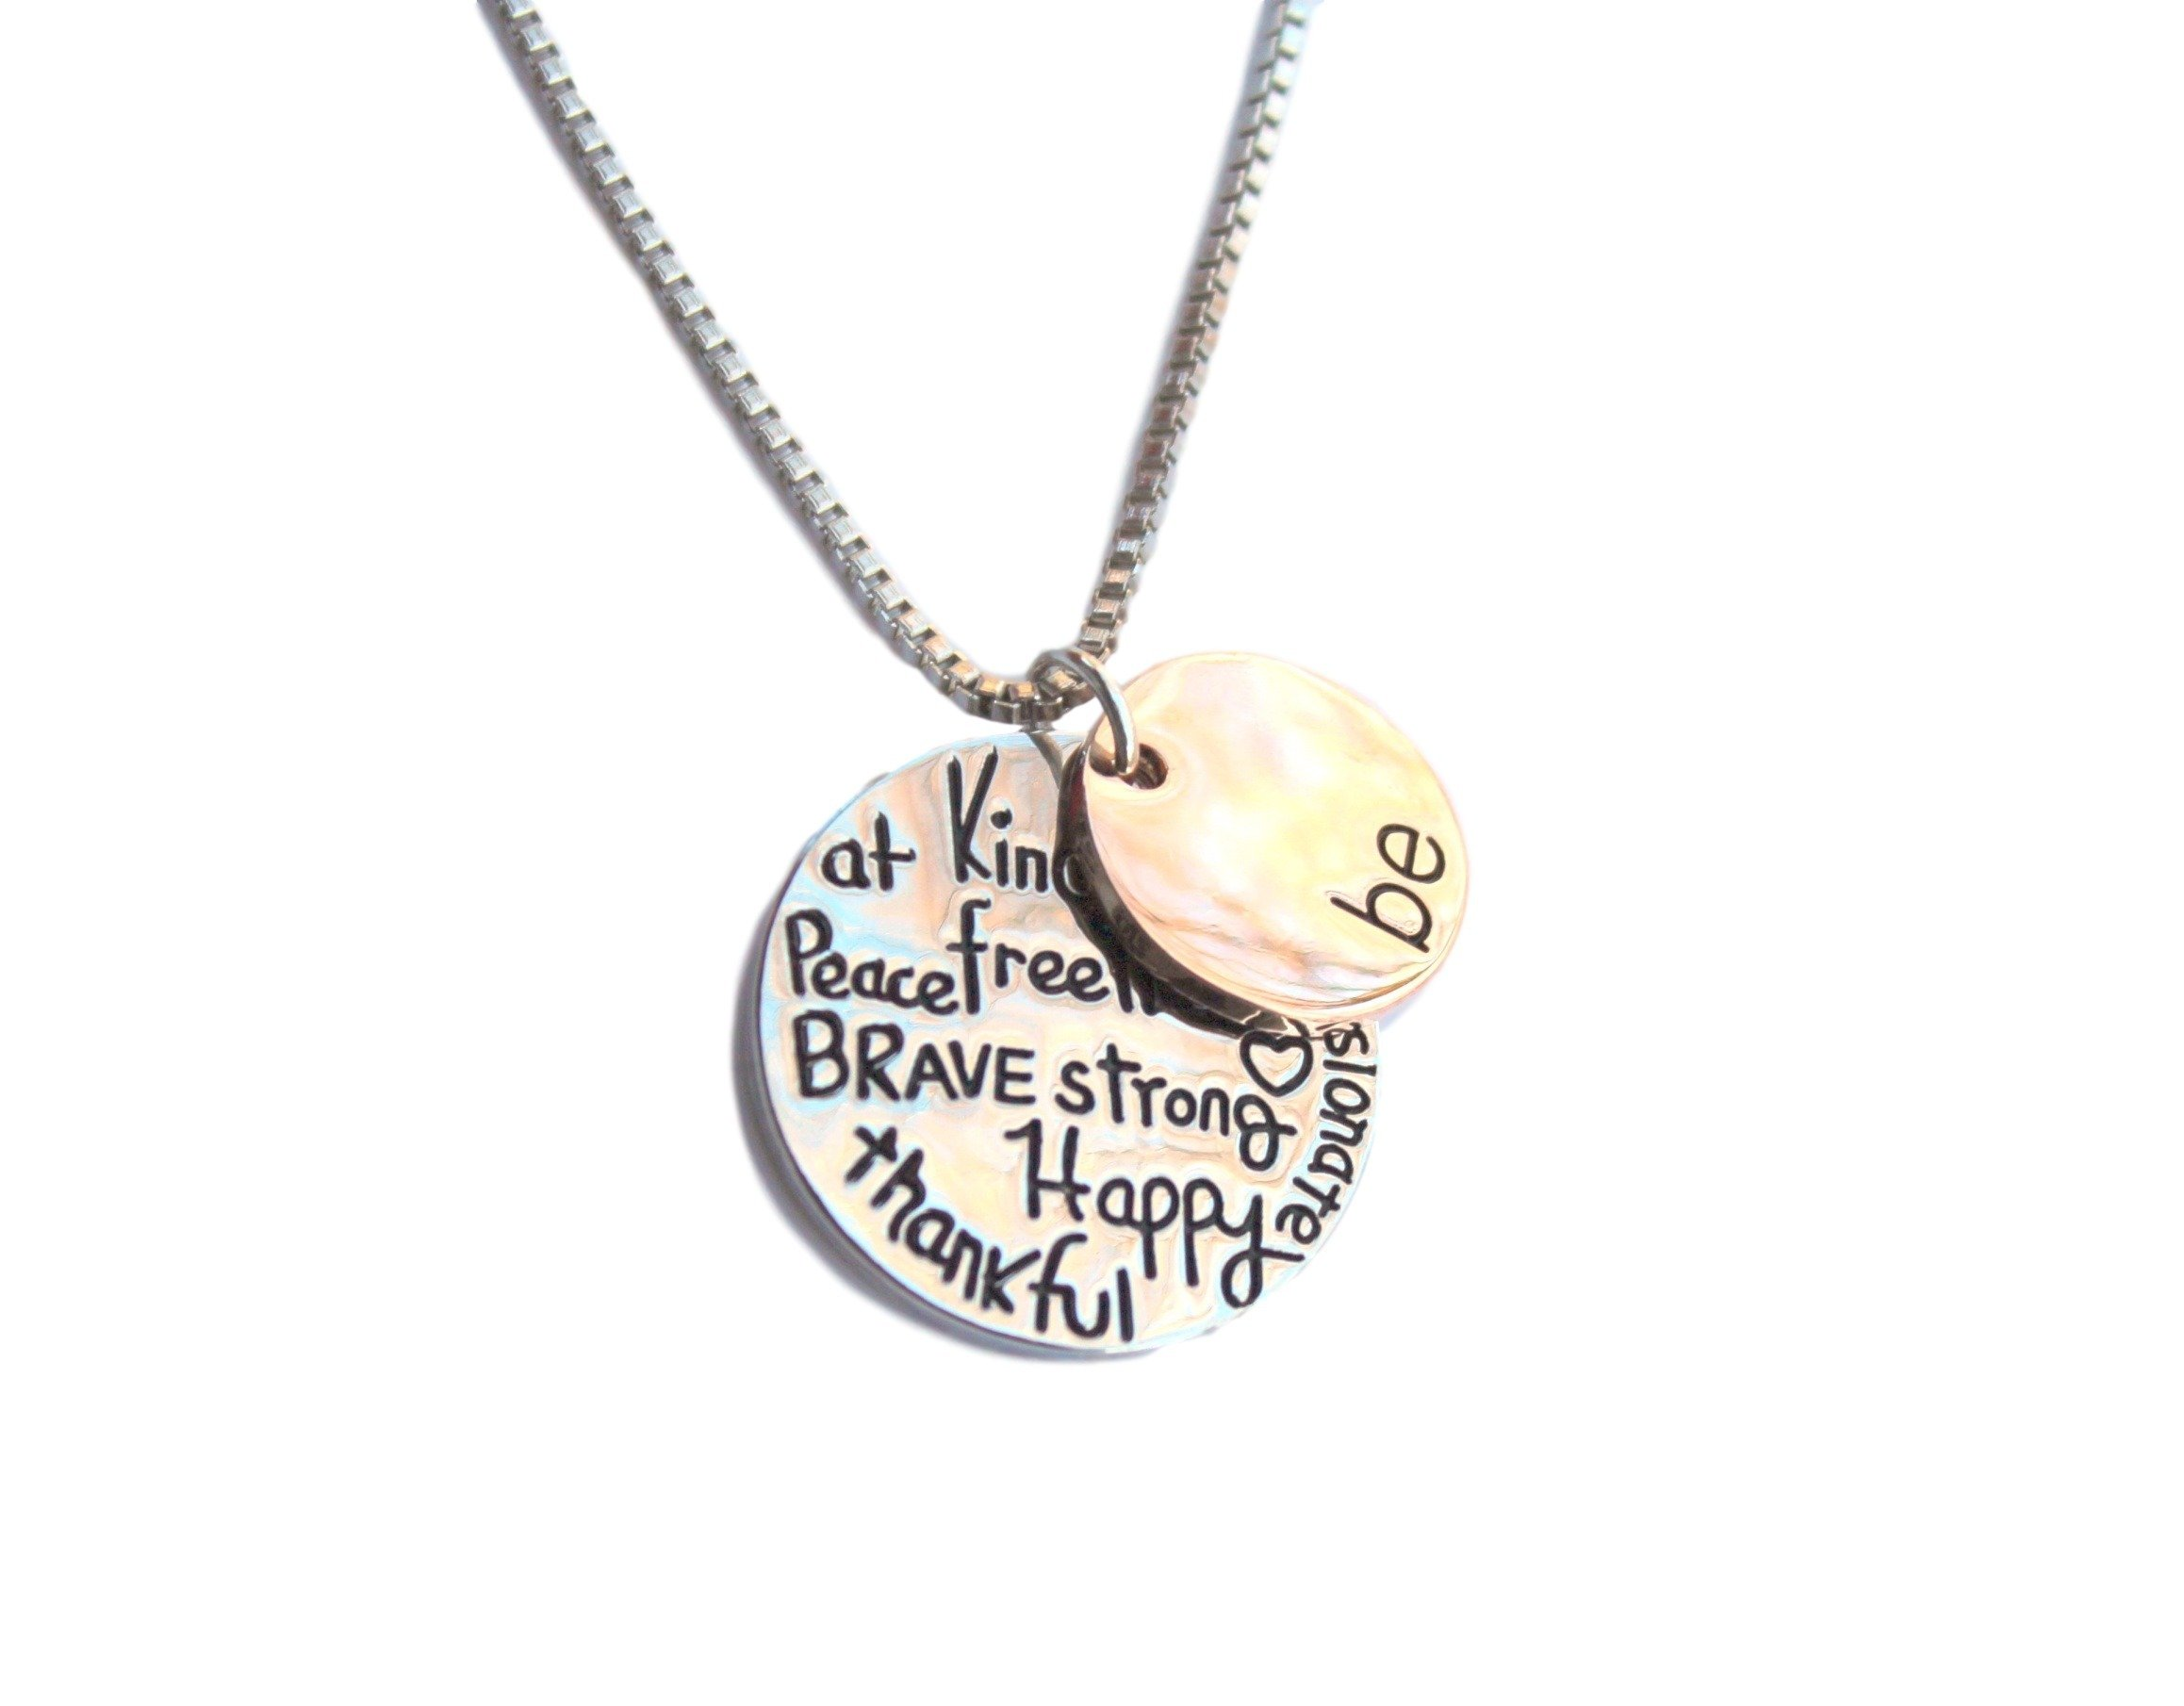 Just Be Pendant Necklace Thankful, Kind, Passionate, Happy, Brave, Free, Shoppingbuyfaith